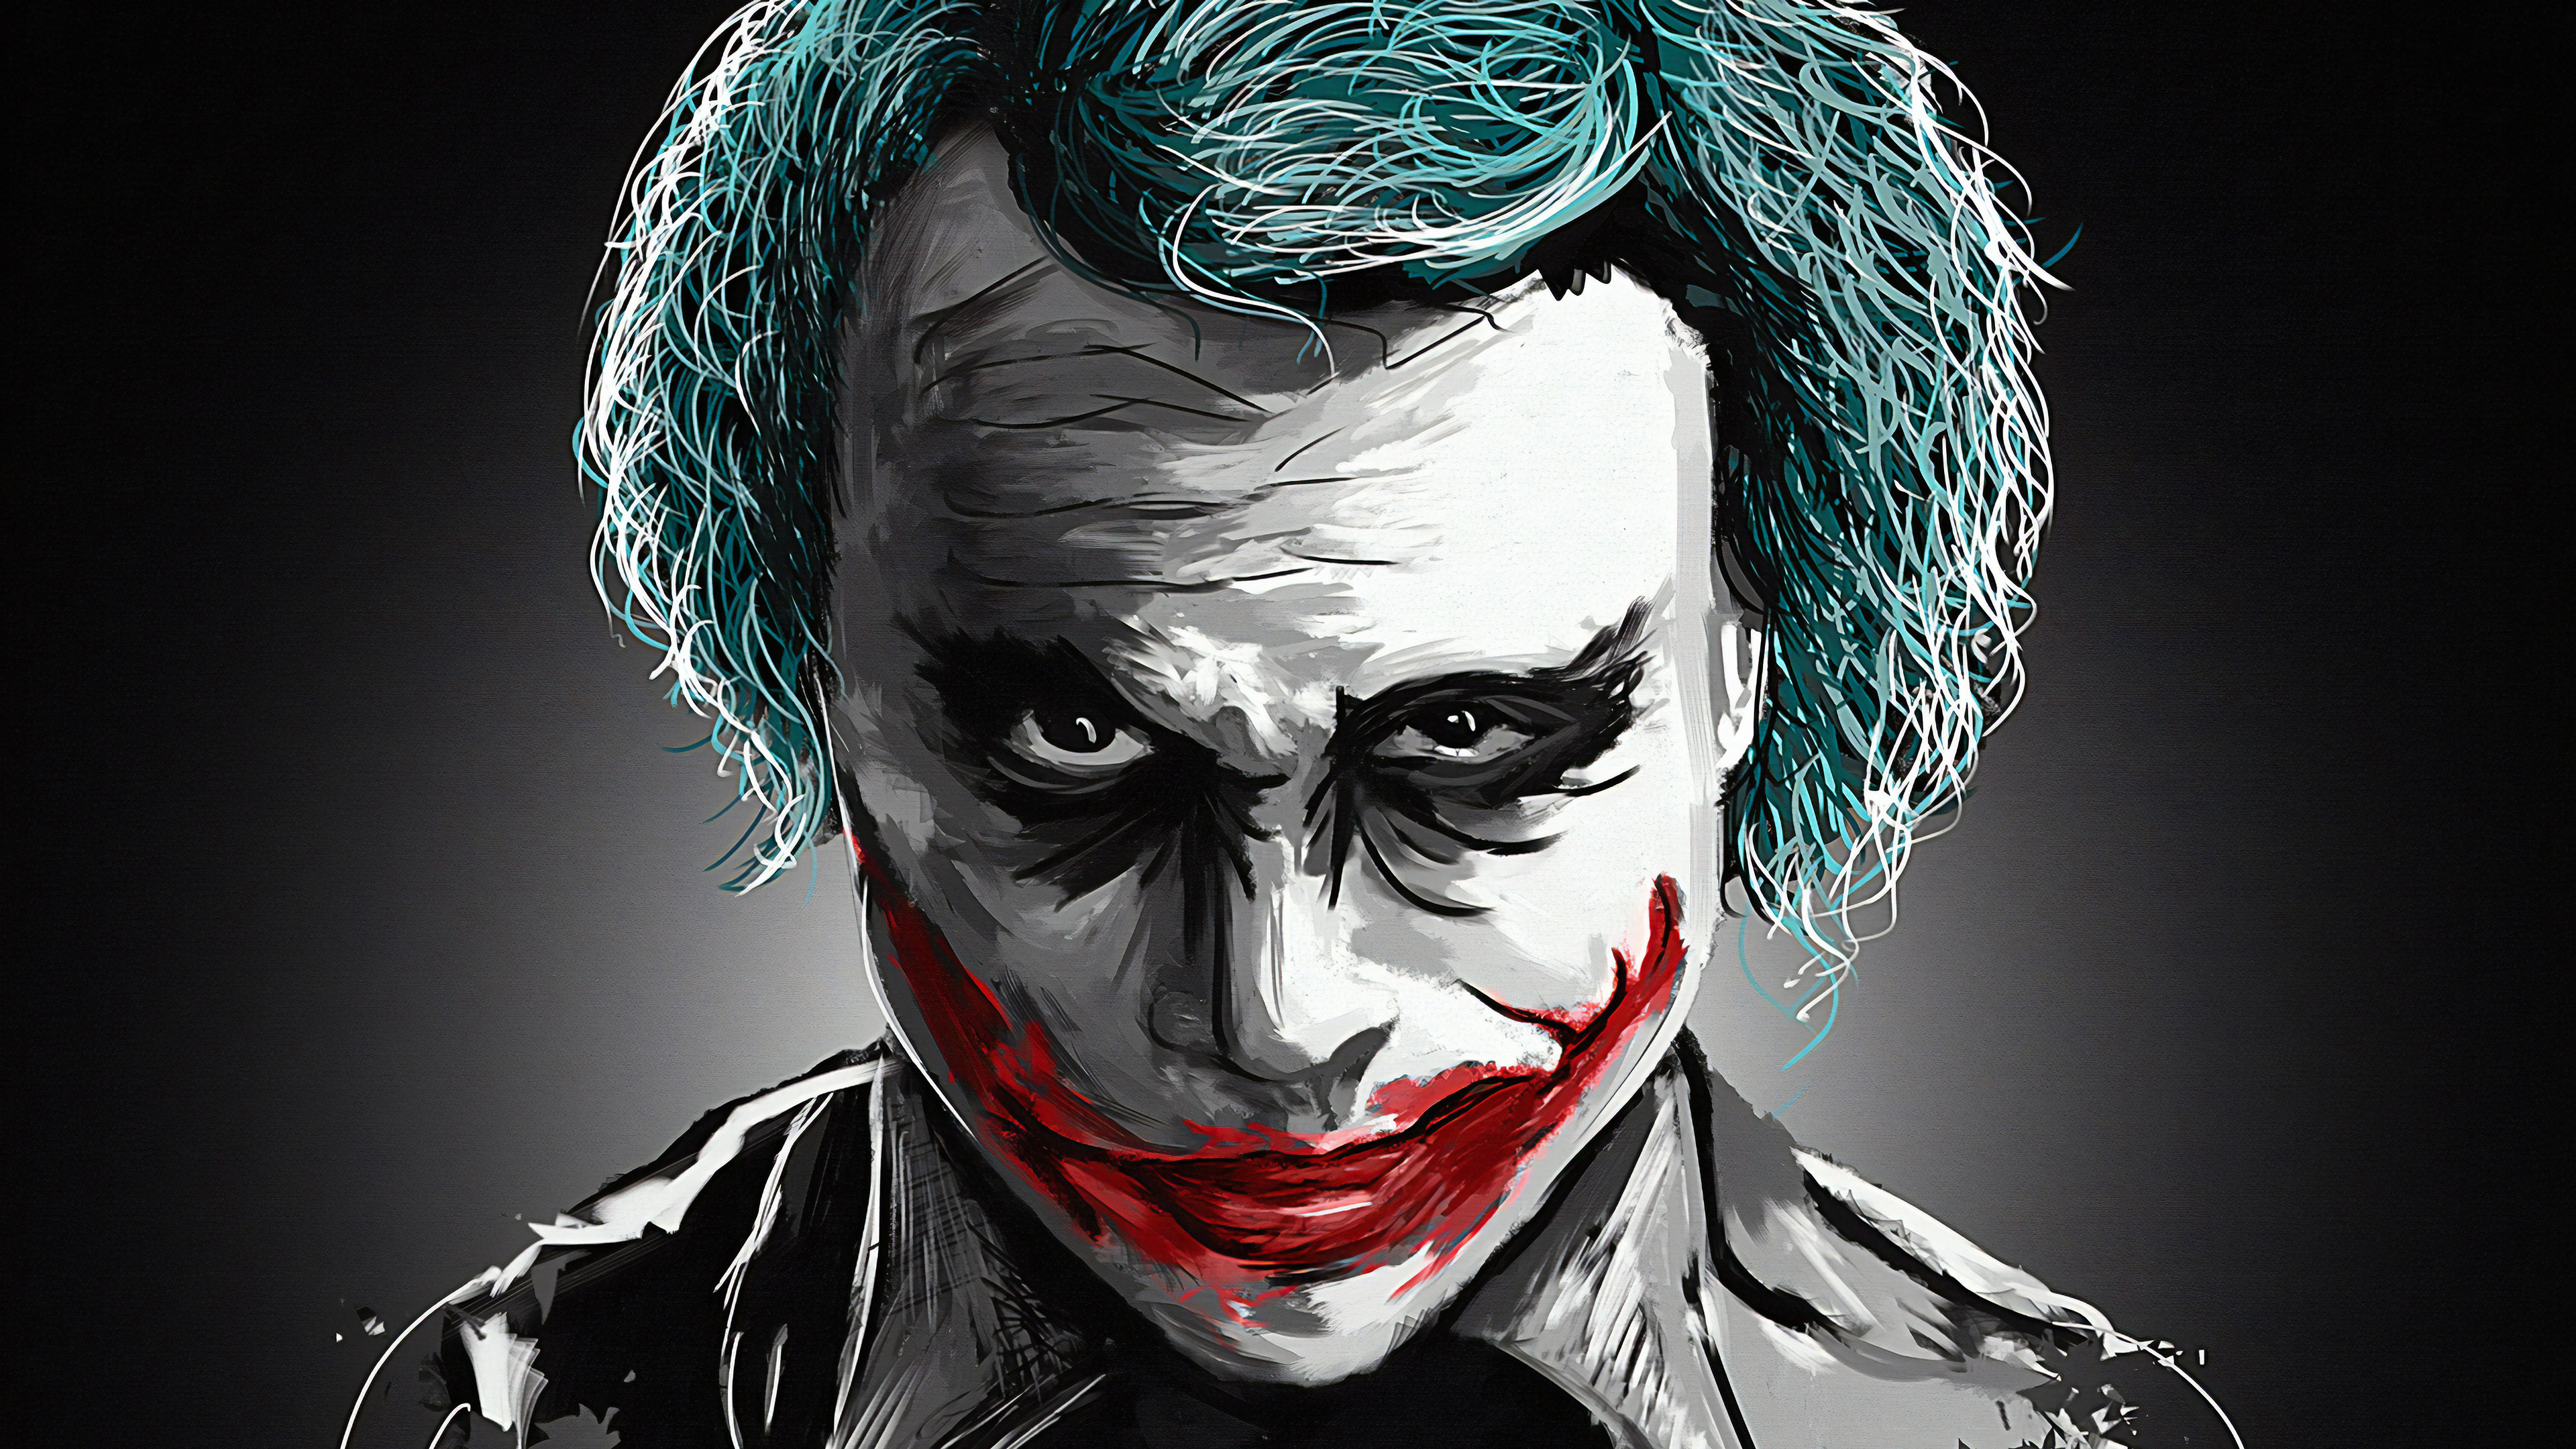 joker heath ledger art 1570394727 - Joker Heath Ledger Art - superheroes wallpapers, joker wallpapers, hd-wallpapers, dc comics wallpapers, artstation wallpapers, 4k-wallpapers